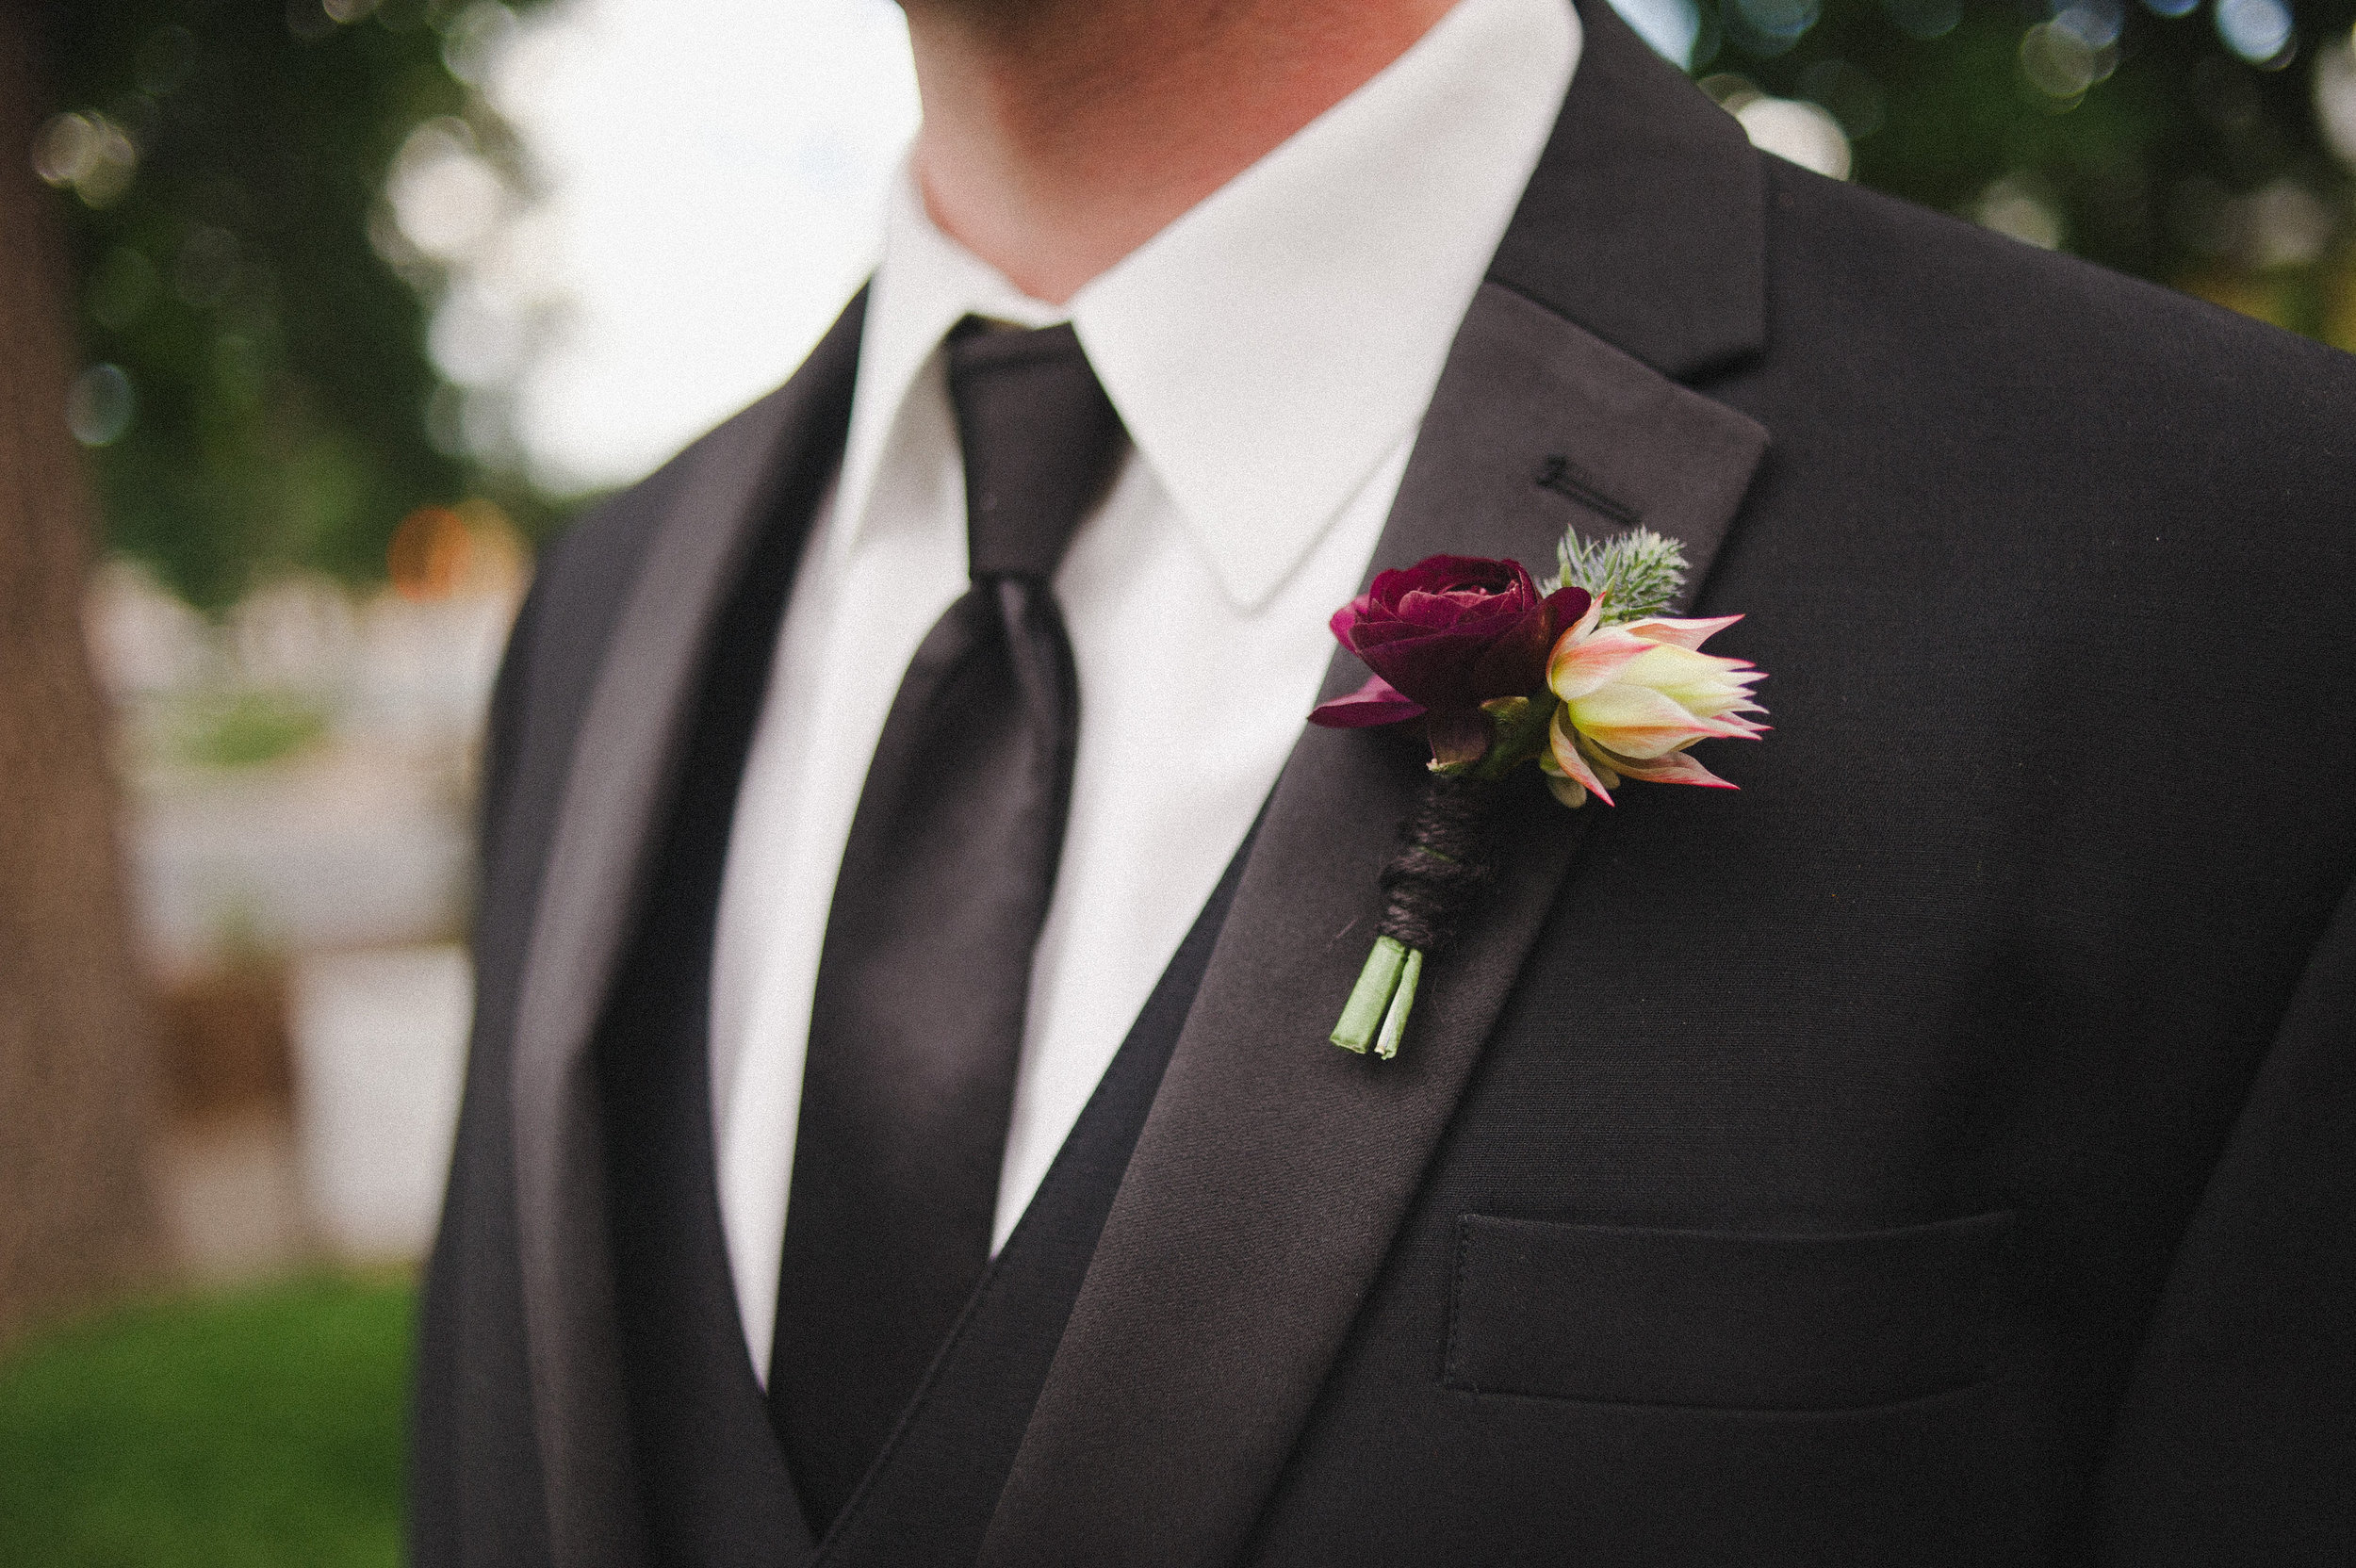 Flowers by Lace and Lilies, Burgundy Ranunculus, Blue Thistle and Blushing Bride boutonniere, black tie tux wedding